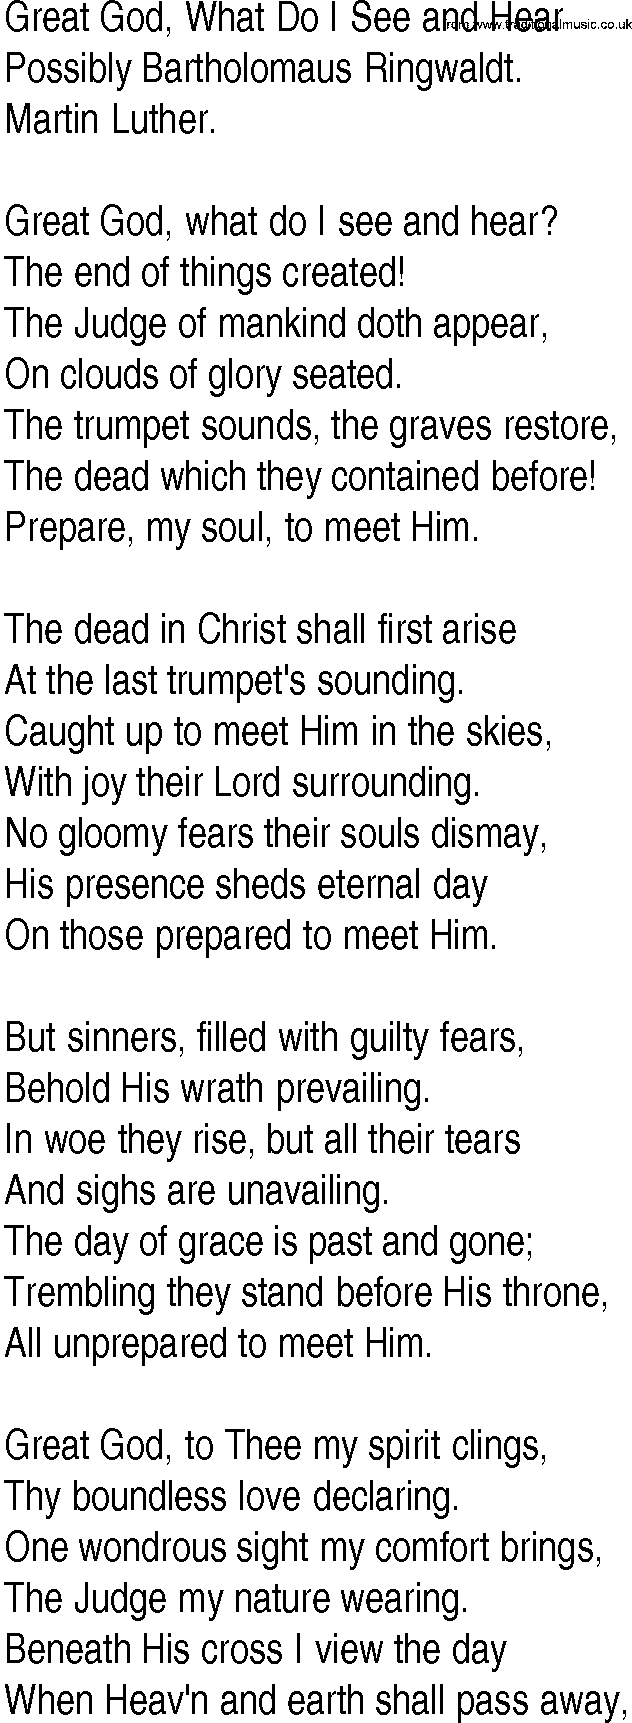 Hymn and Gospel Song Lyrics for Great God, What Do I See and Hear by Possibly Bartholomaus Ringwaldt